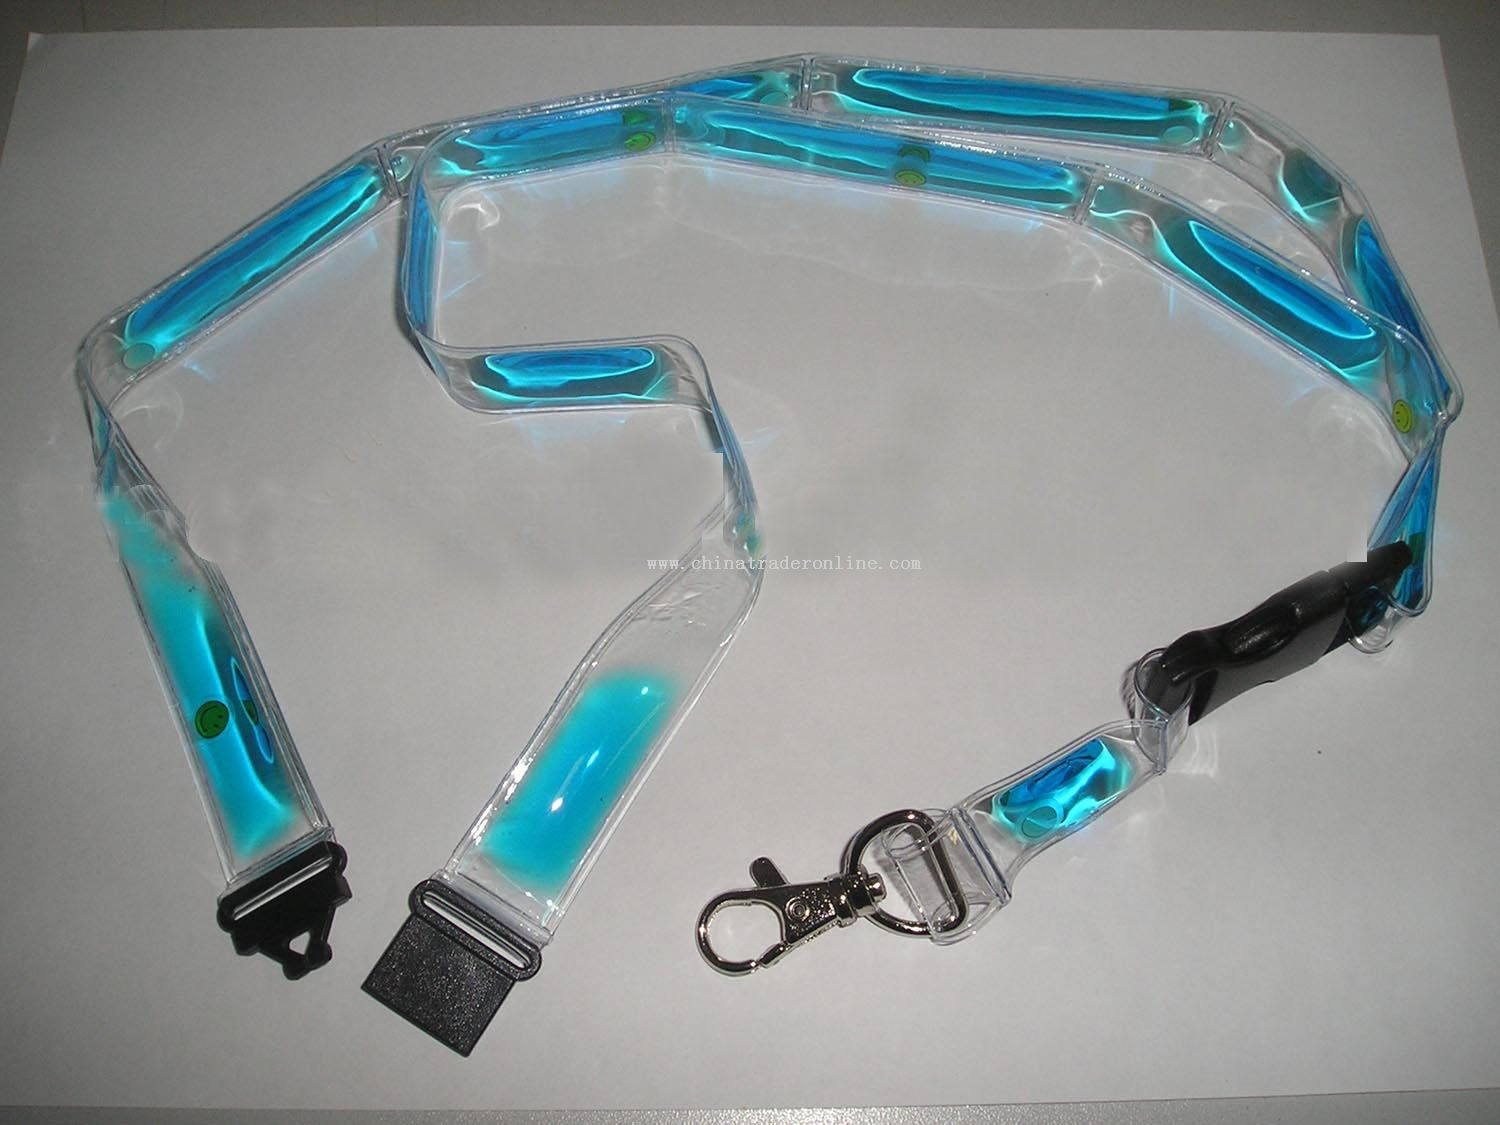 liquid lanyard from China